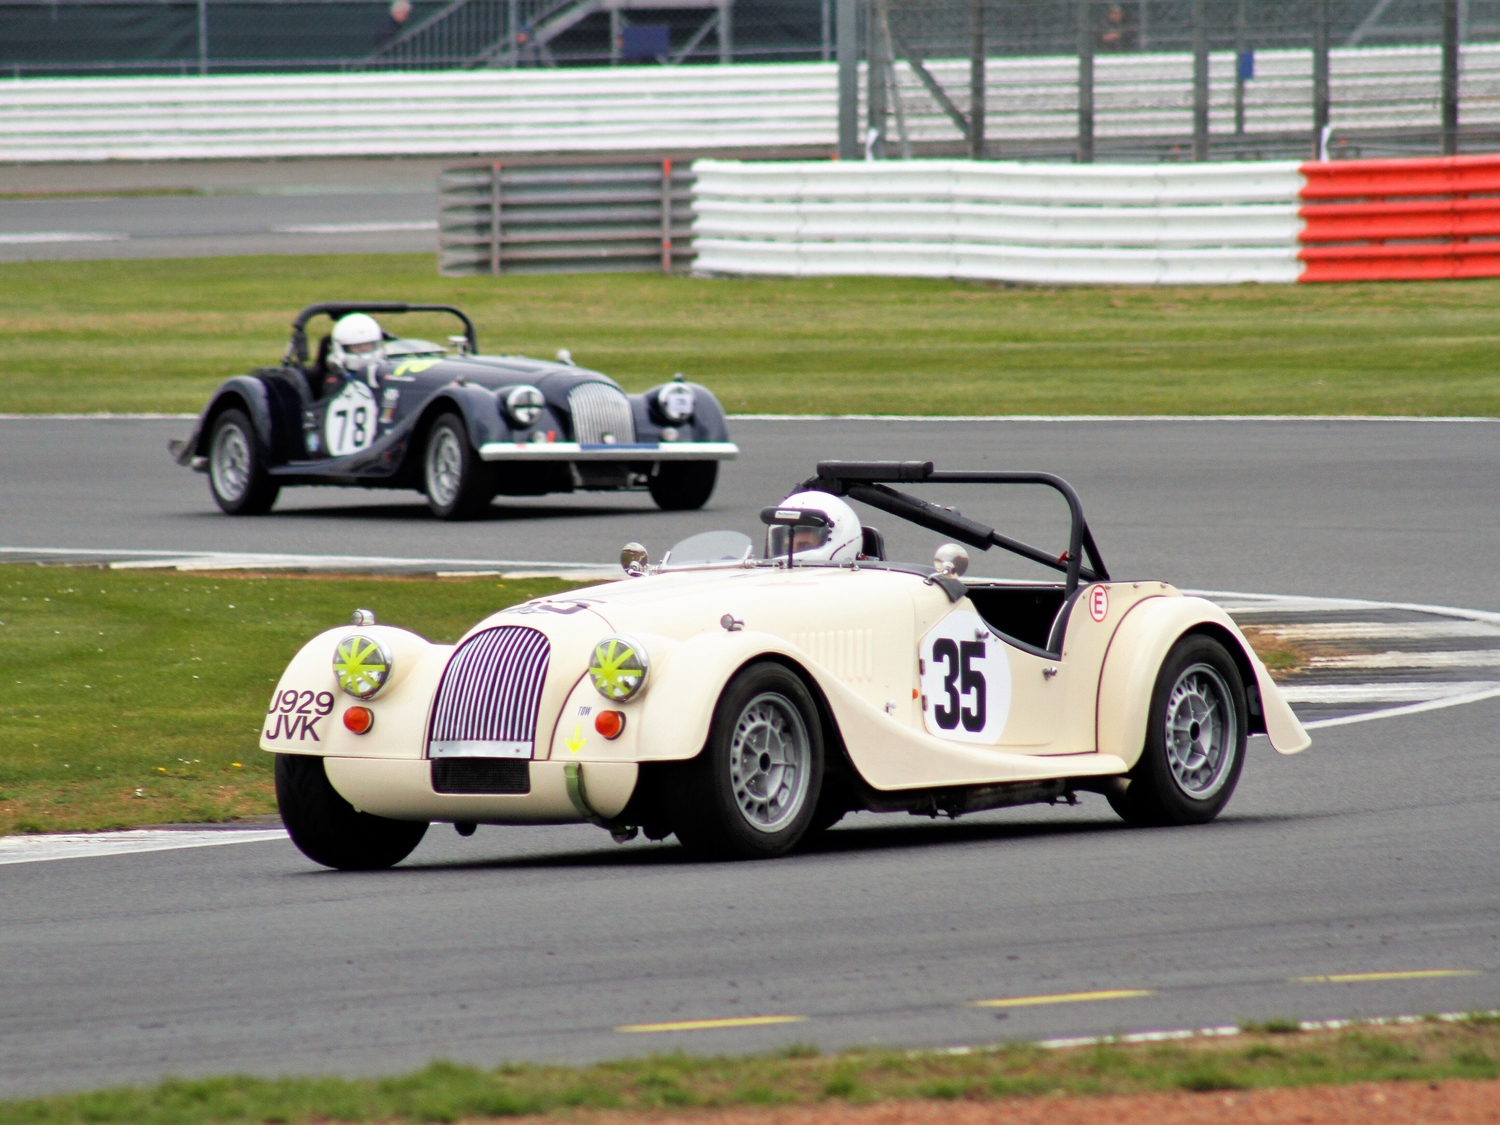 1992 (Pre Cat) Class C Competition Morgan +8 - £26,995.00 (Reduced price)